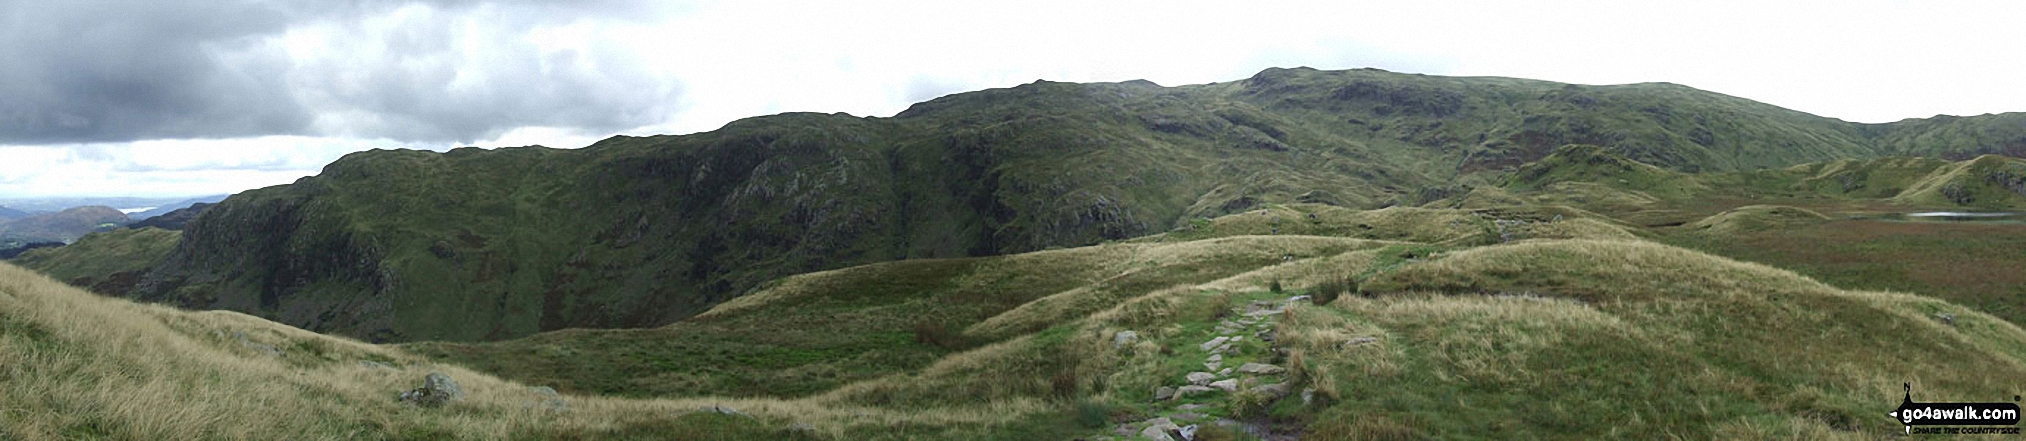 Broadstone Head, Ferngill Crag and Deer Bields from Brownrigg Moss